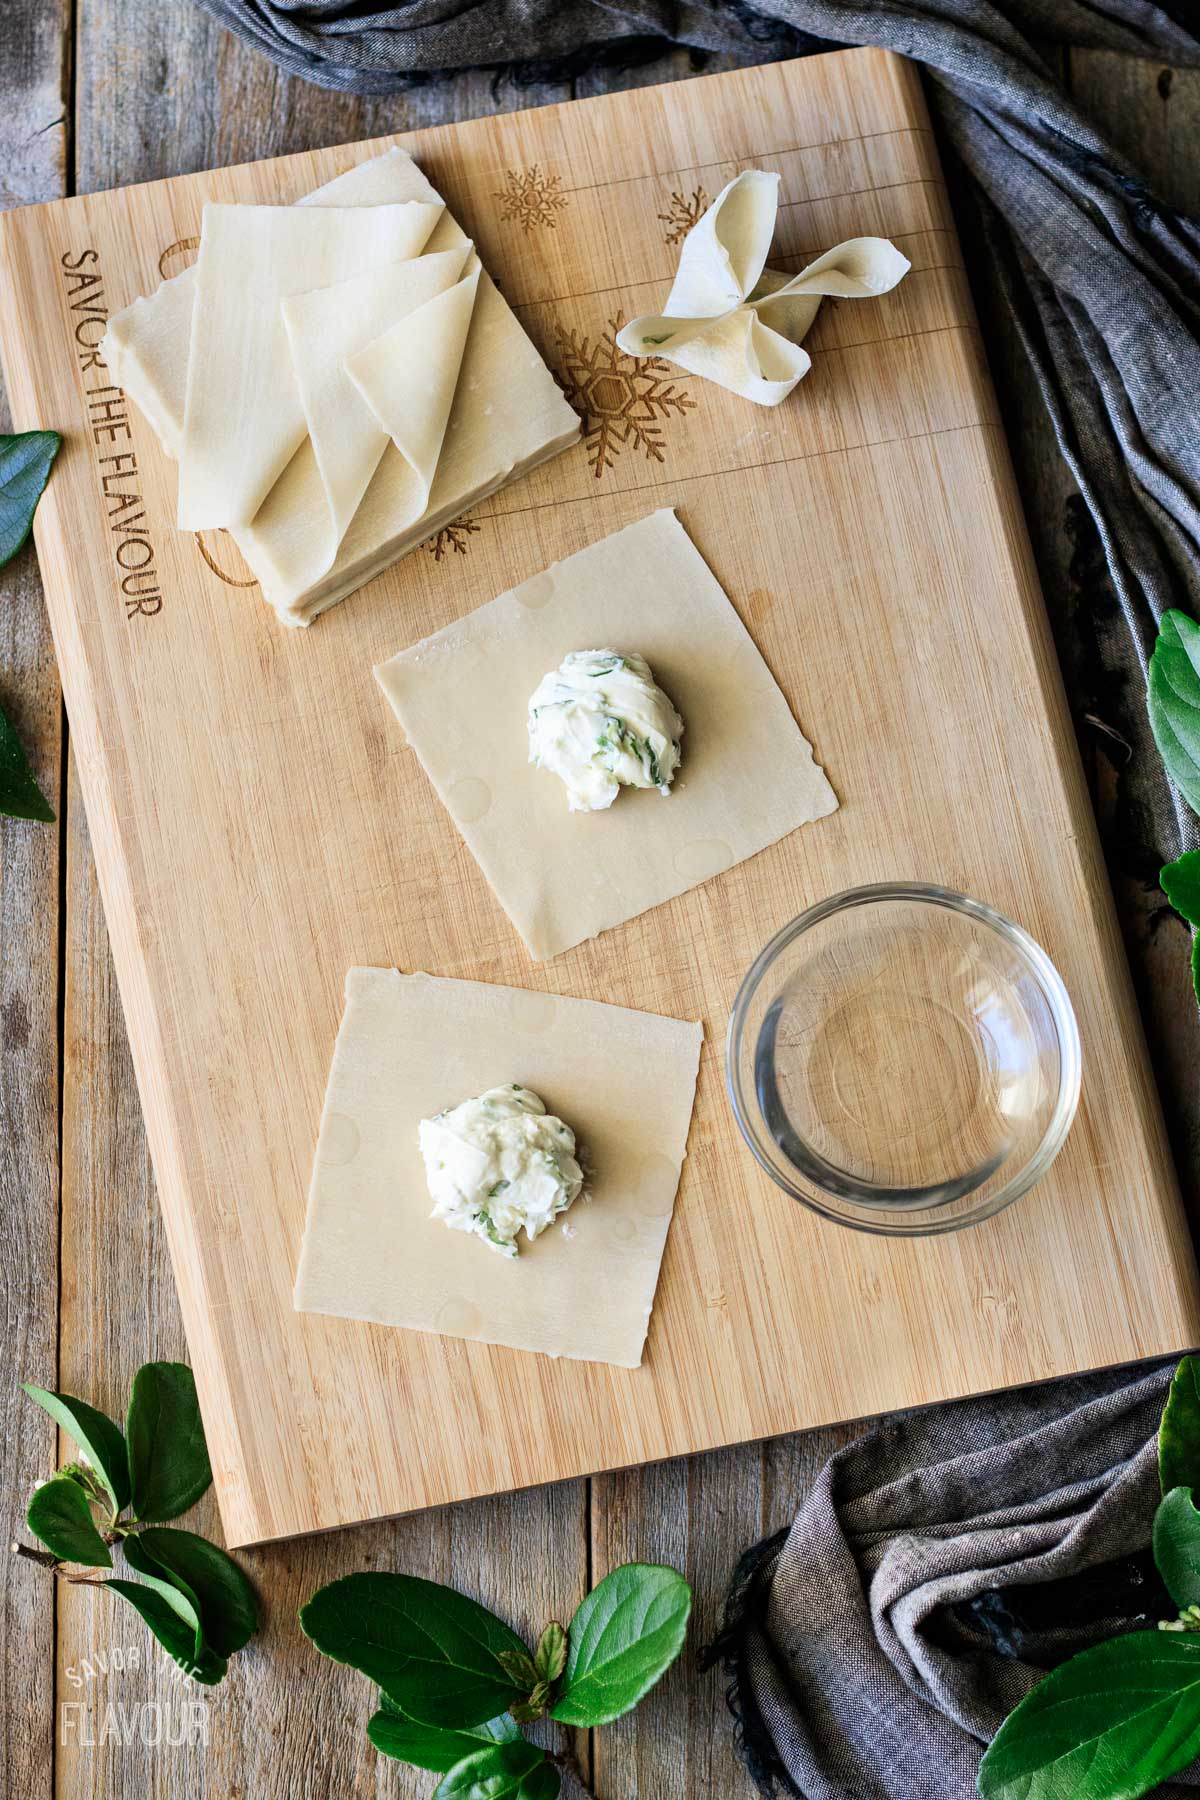 cream cheese filling and wontons on a cutting board